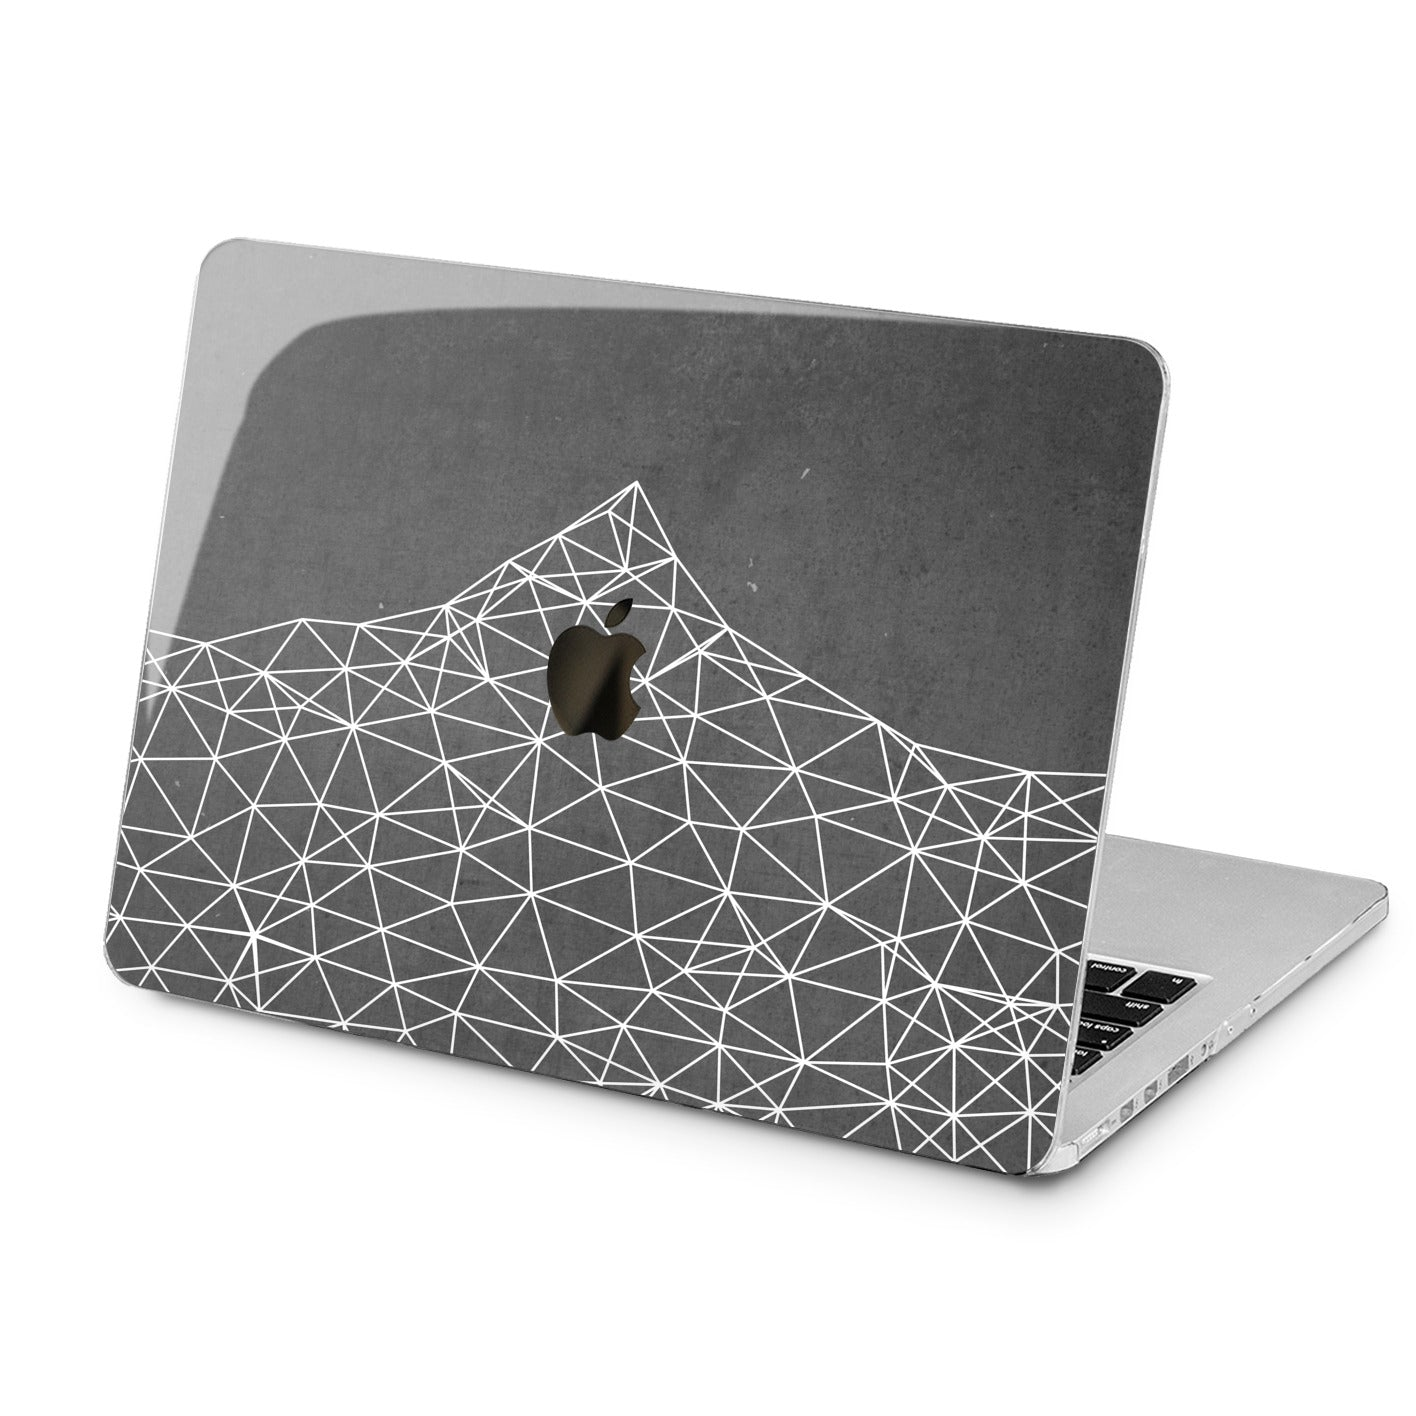 Lex Altern Lex Altern Abstract Mountain Case for your Laptop Apple Macbook.